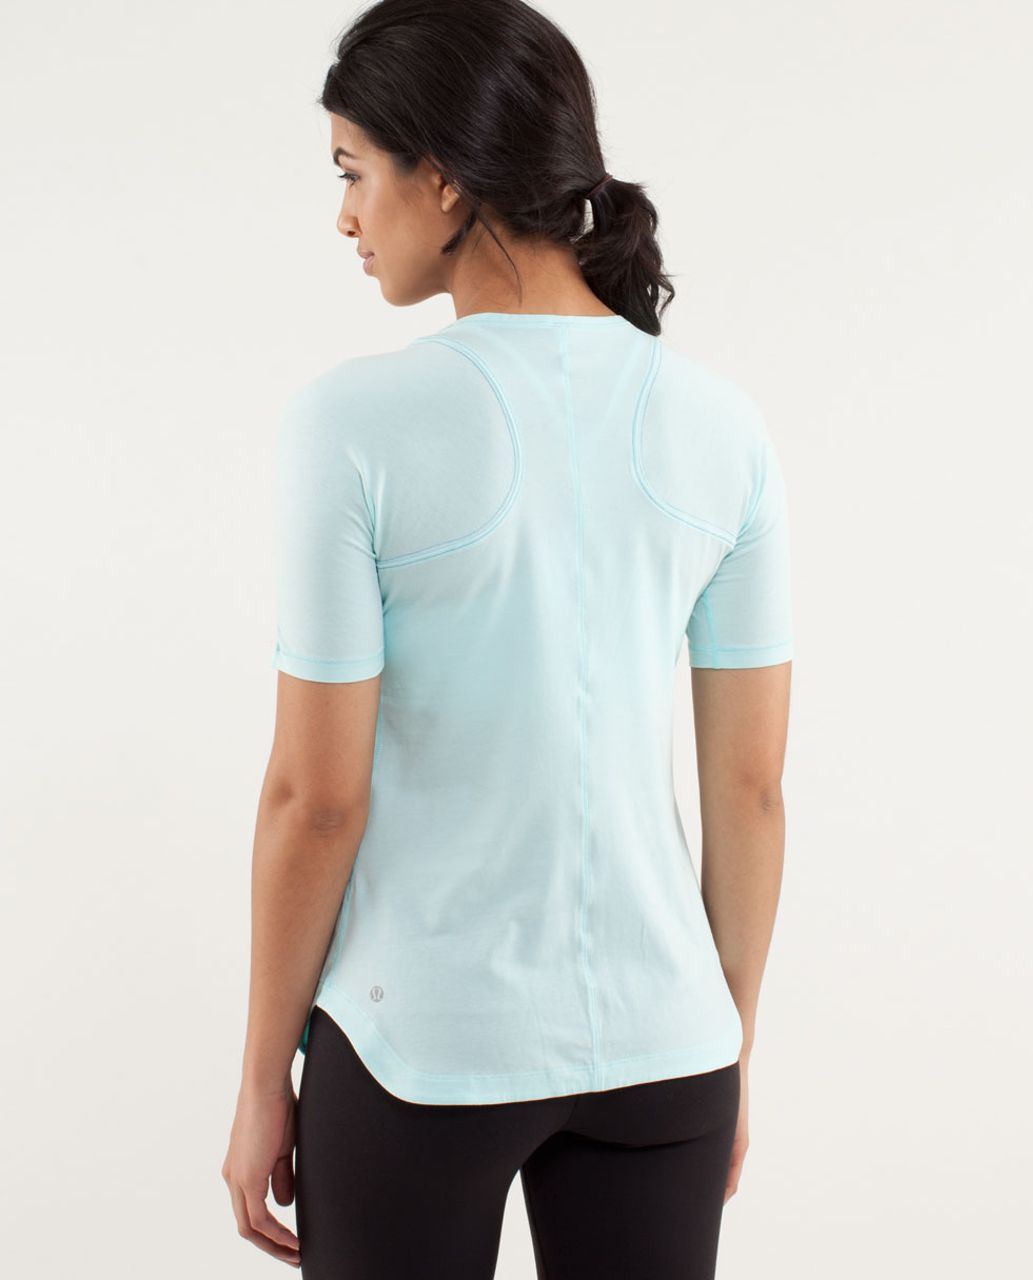 Lululemon Clari-Tee Short Sleeve - Aquamarine